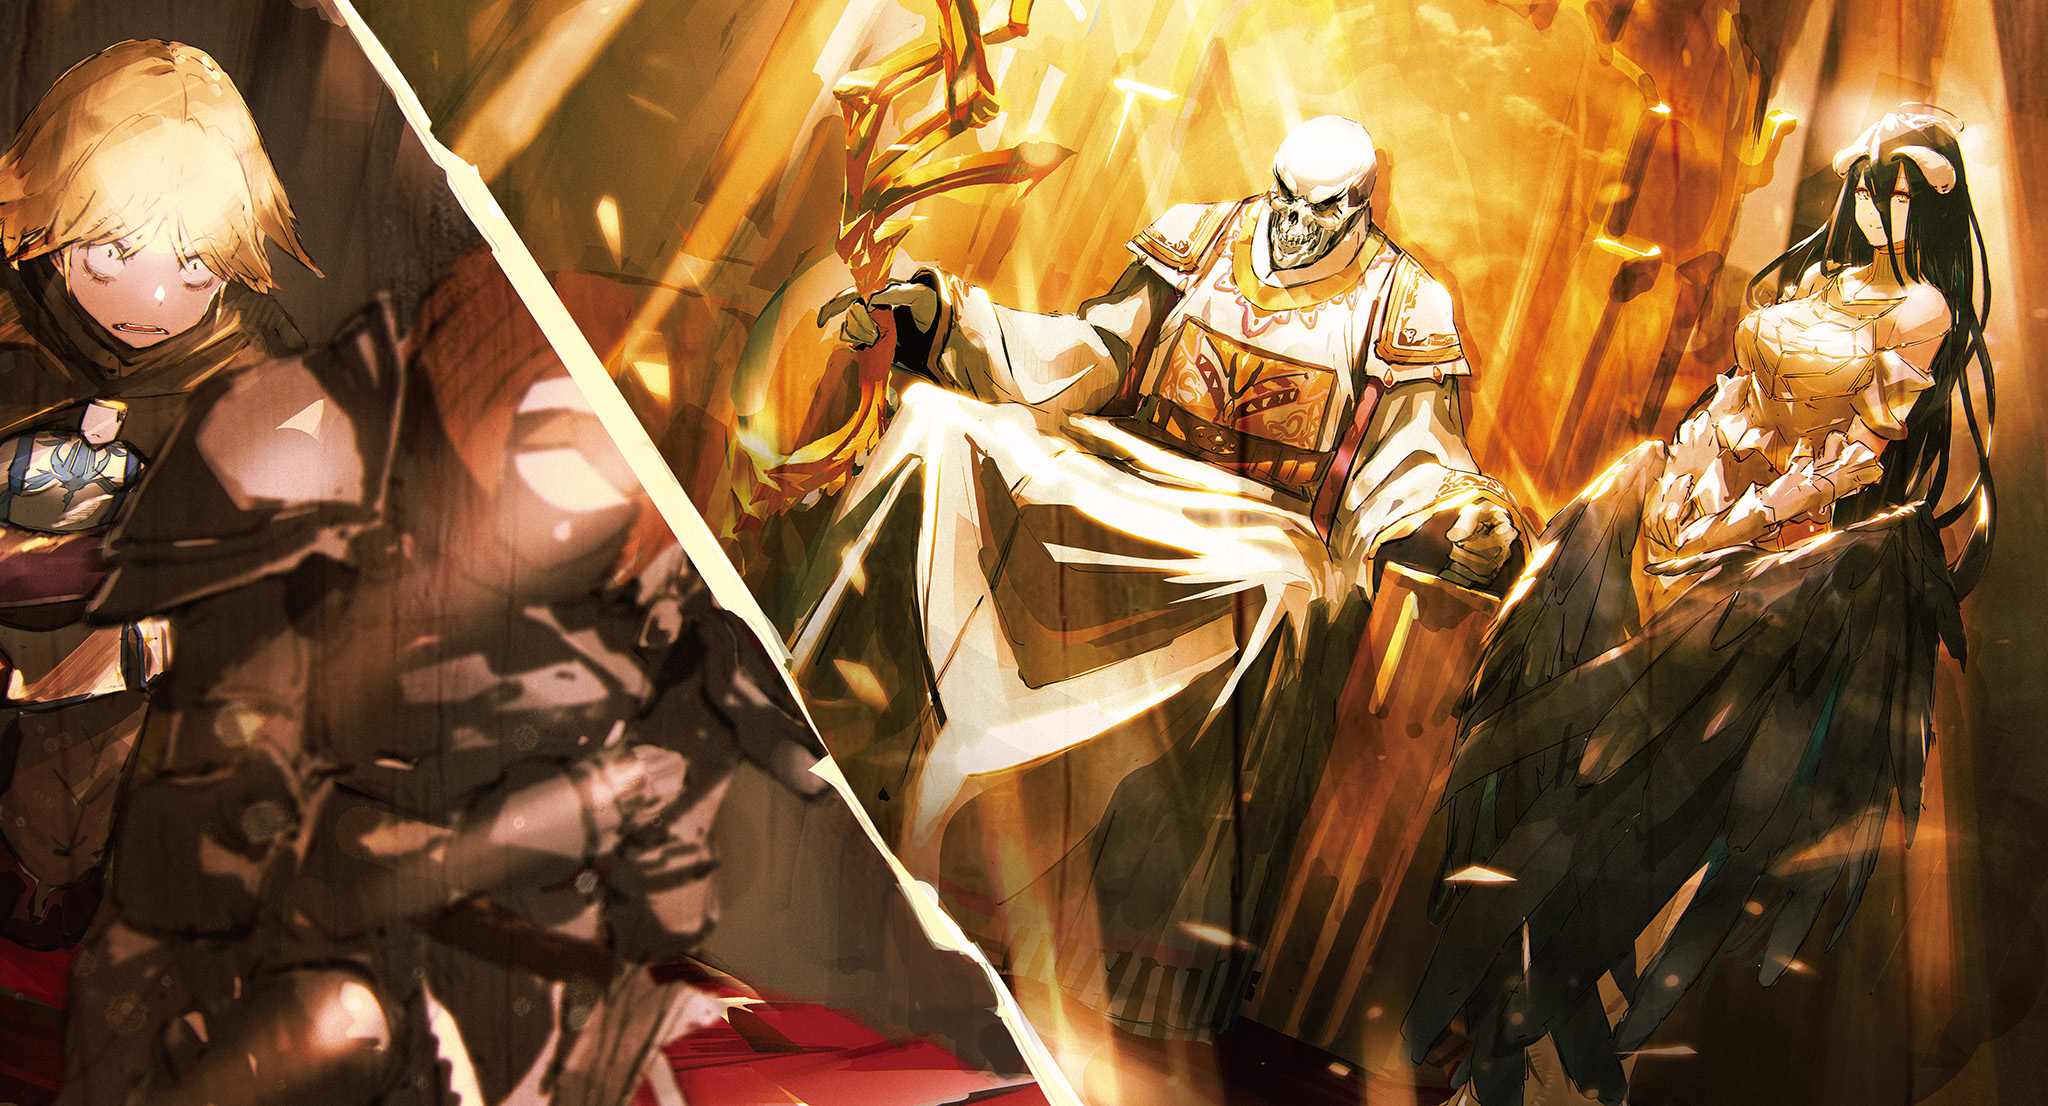 Downaload Overlord King And Warriors Art Wallpaper: Image - Meeting The Sorcerer King.png